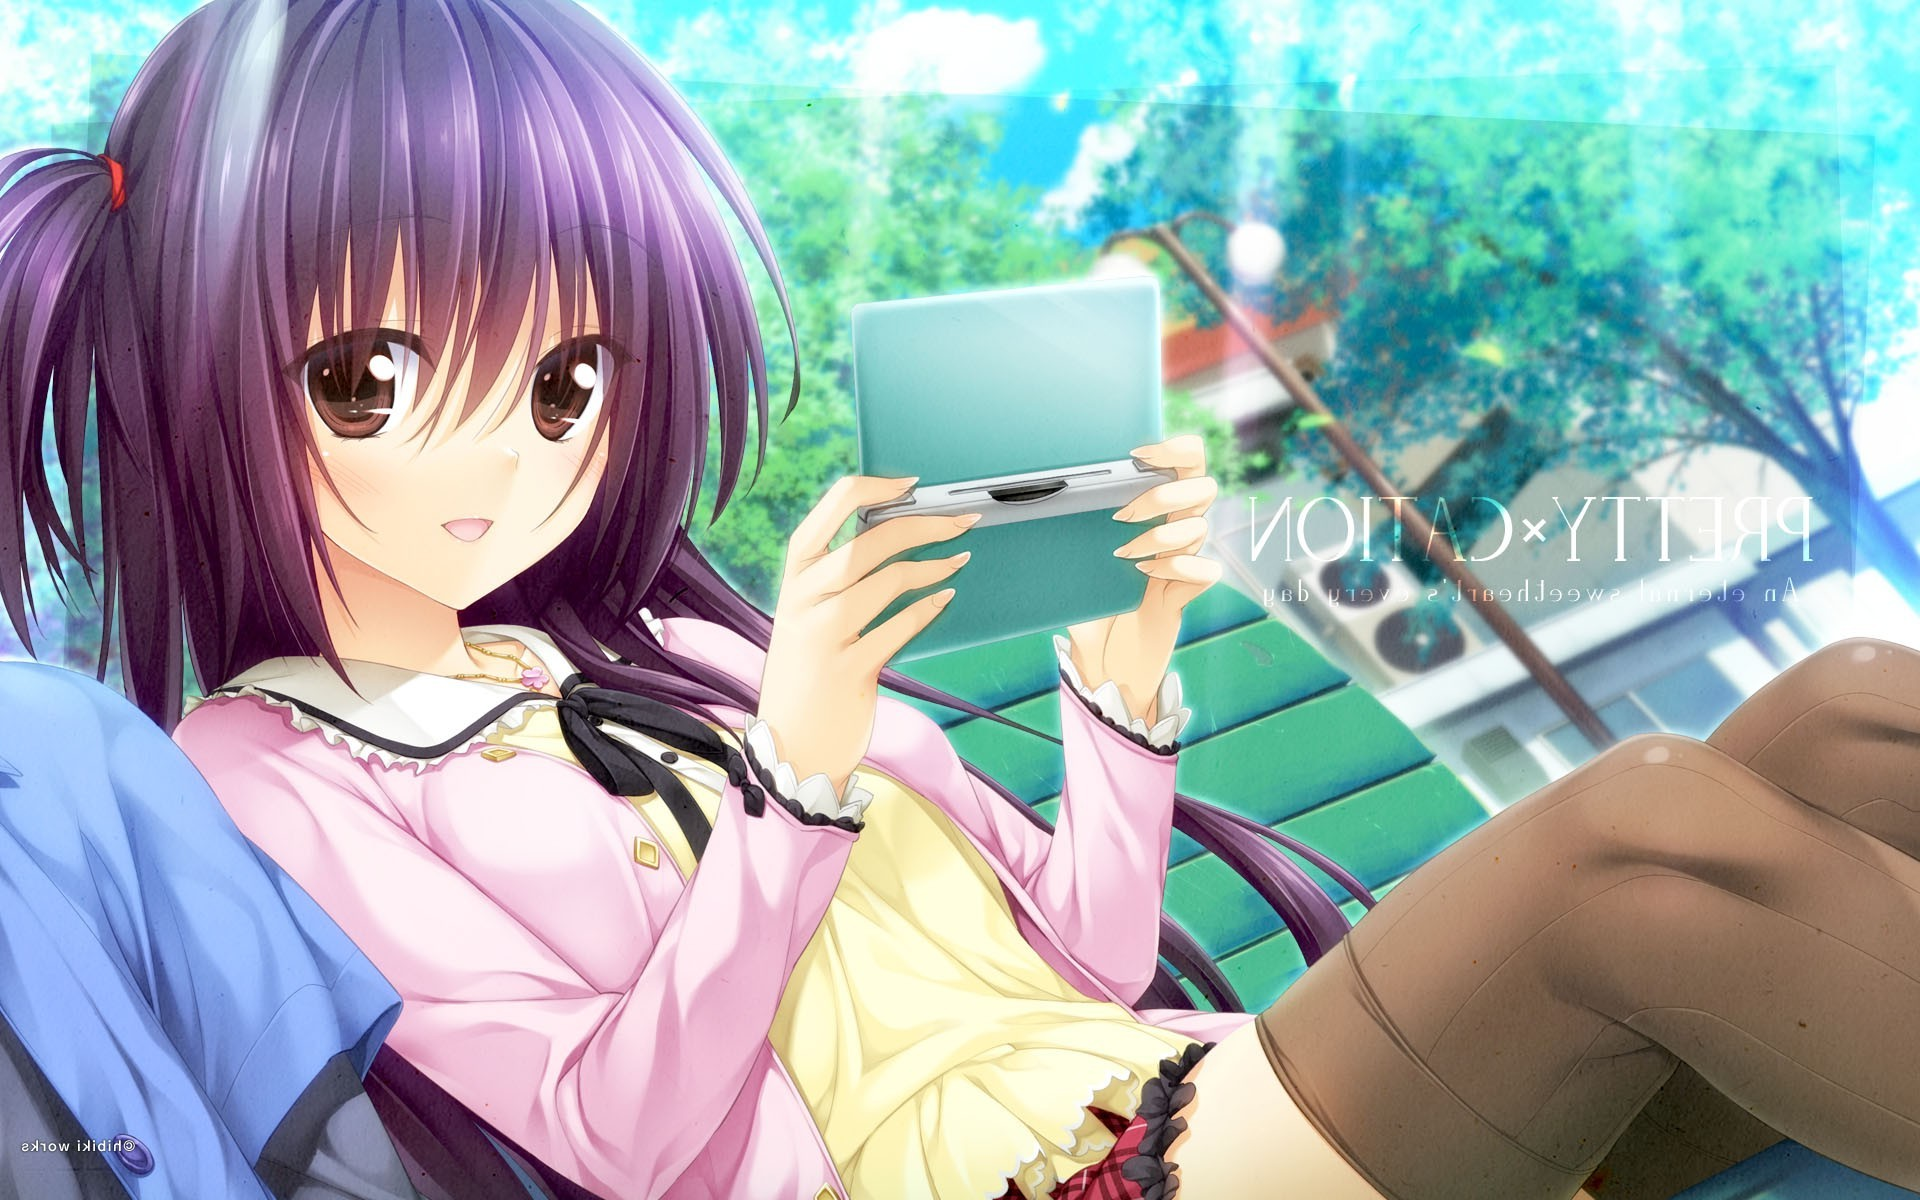 Girl Playing Games In Space 1600x900 Wallpaper Anime Girls Pretty X Cation 2 Thigh Highs Nintendo Ds